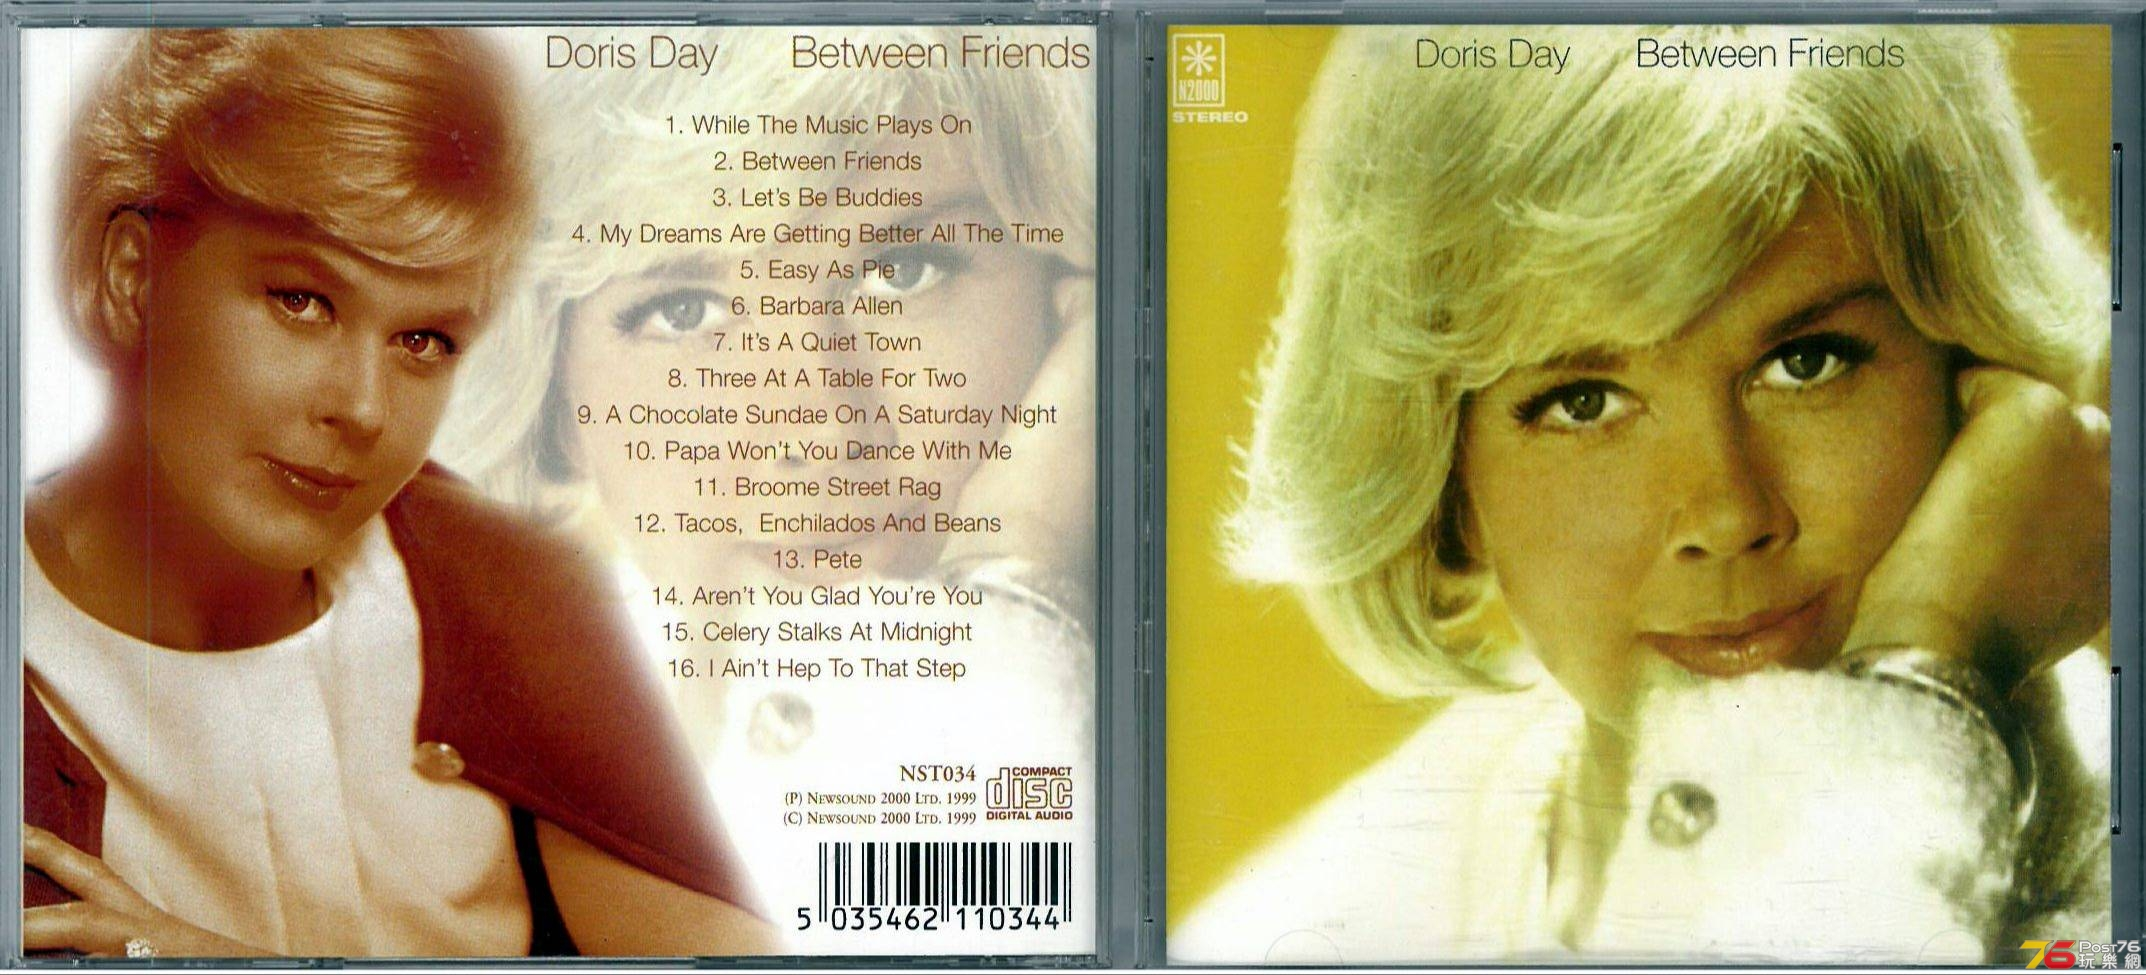 Doris Day  Between Friends a.jpg